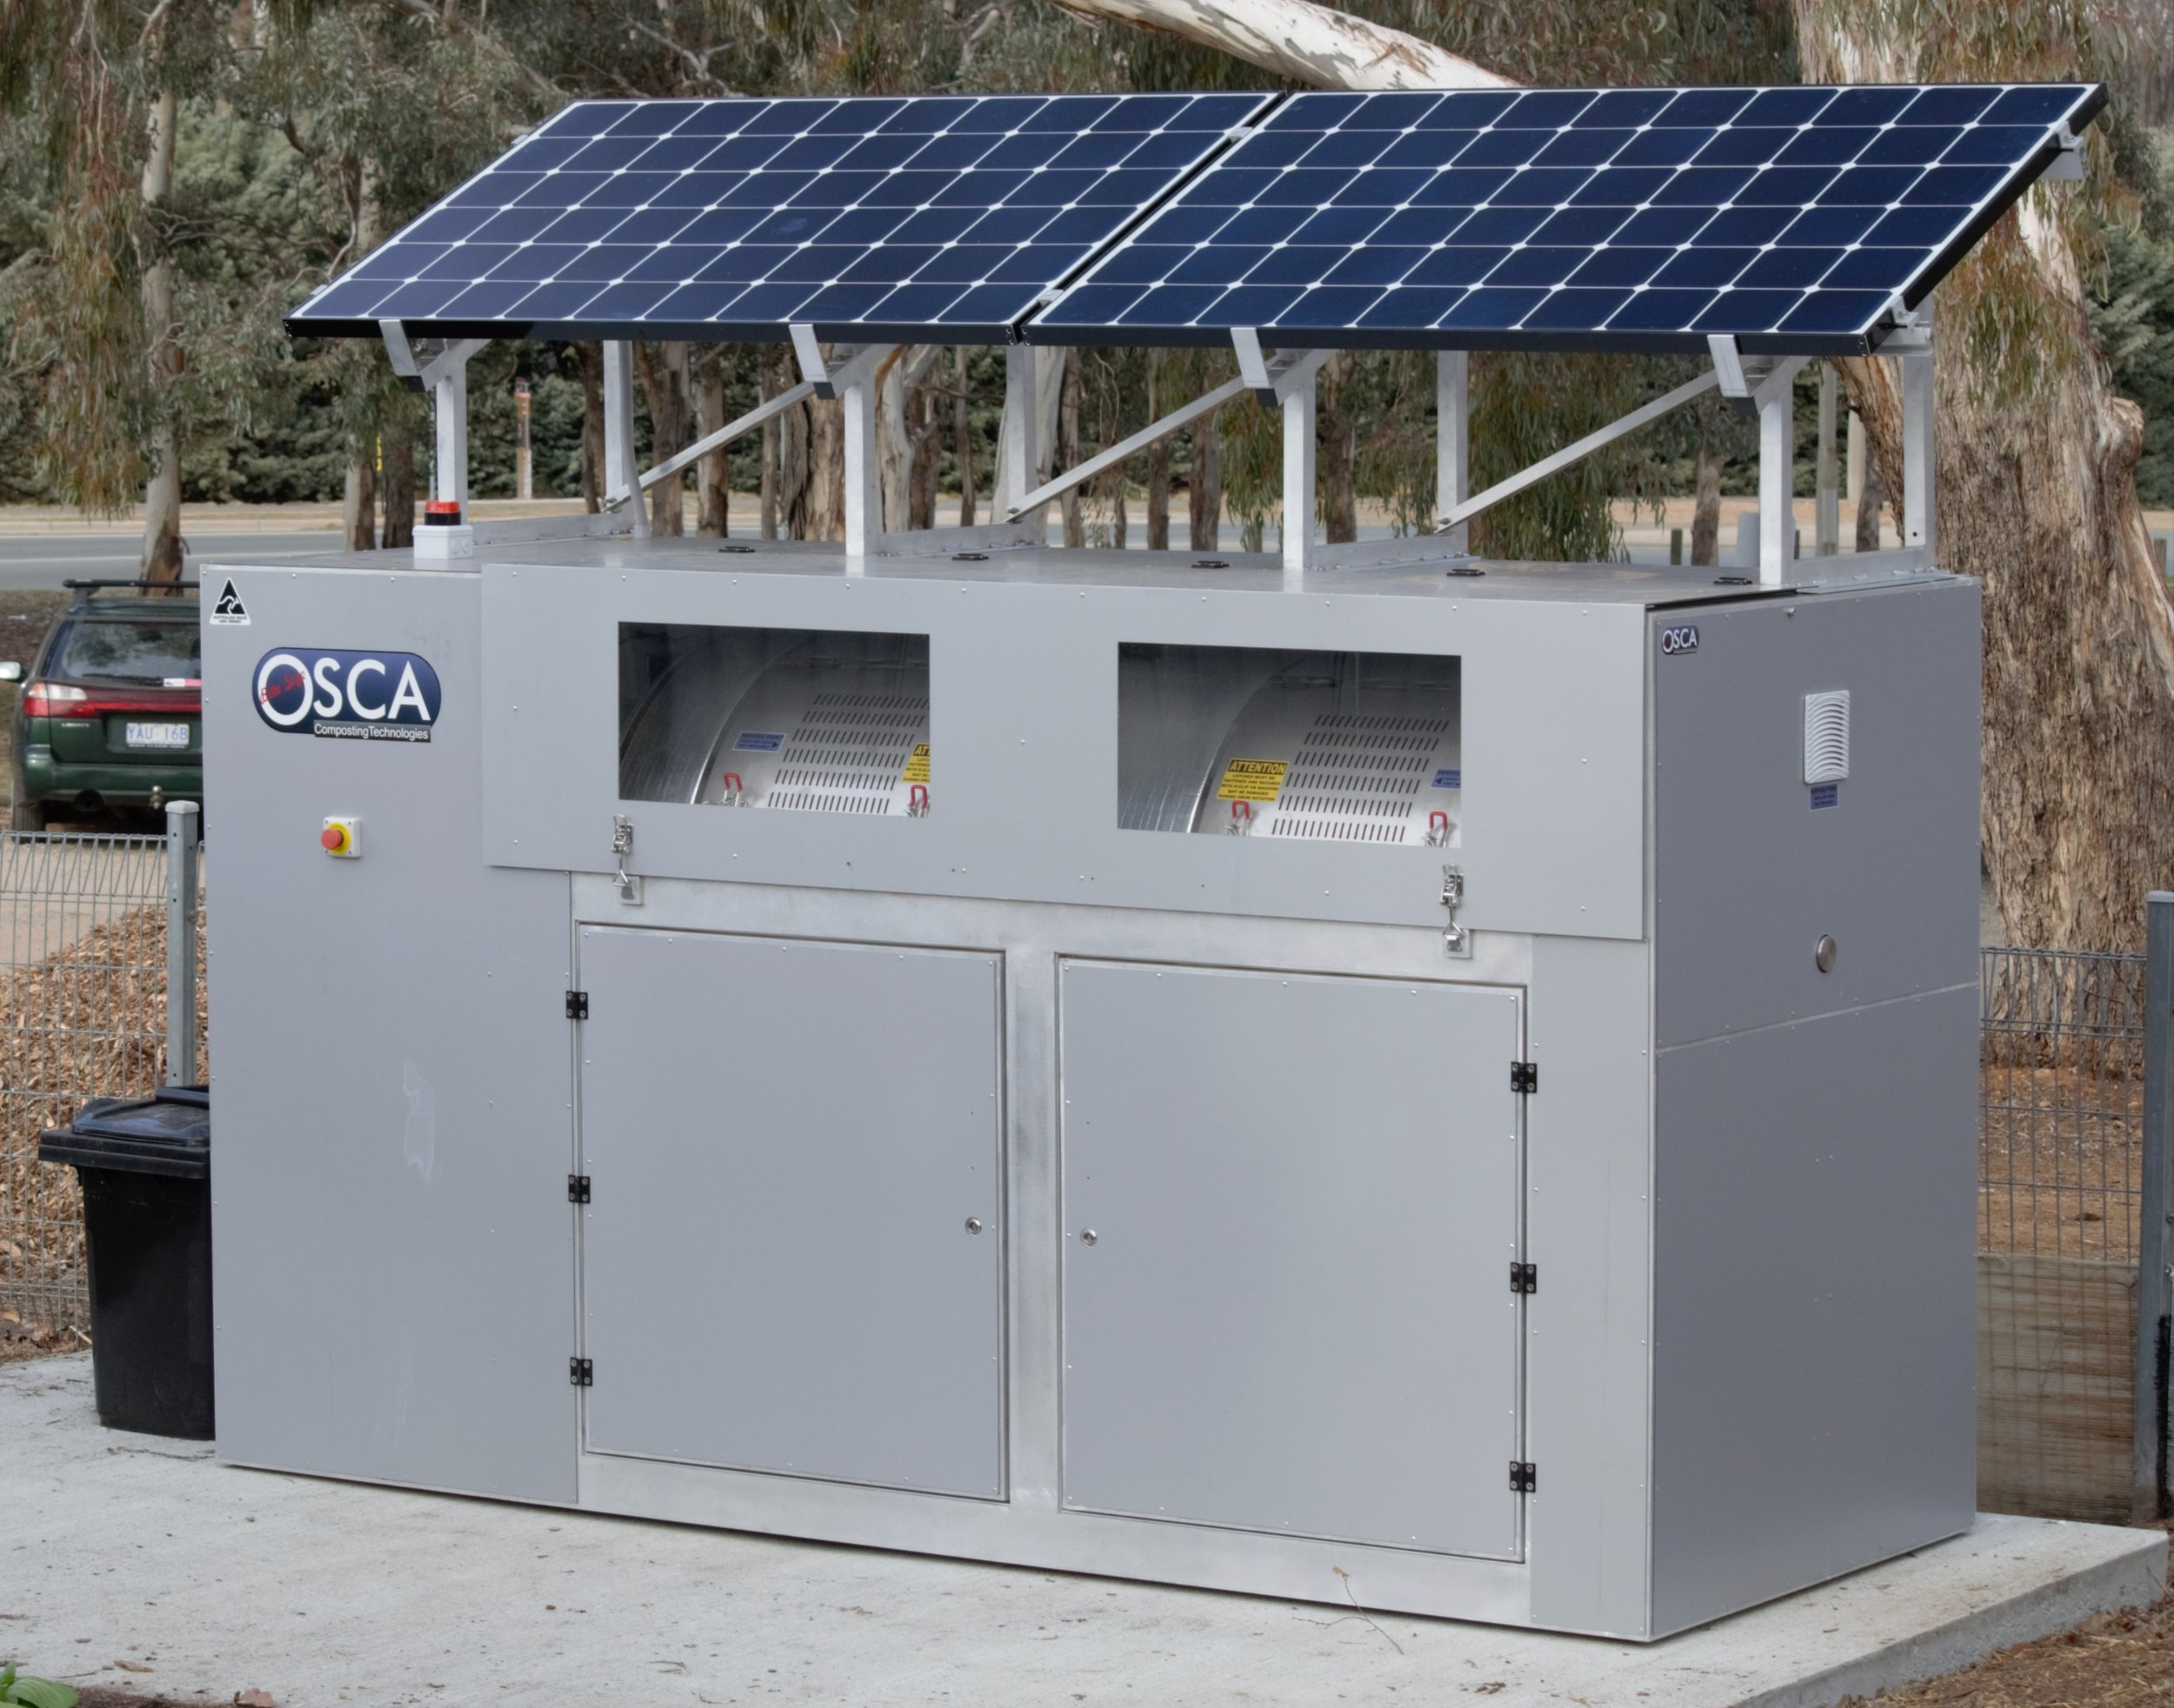 Our hungry OSCA (On Site Composting Apparatus)